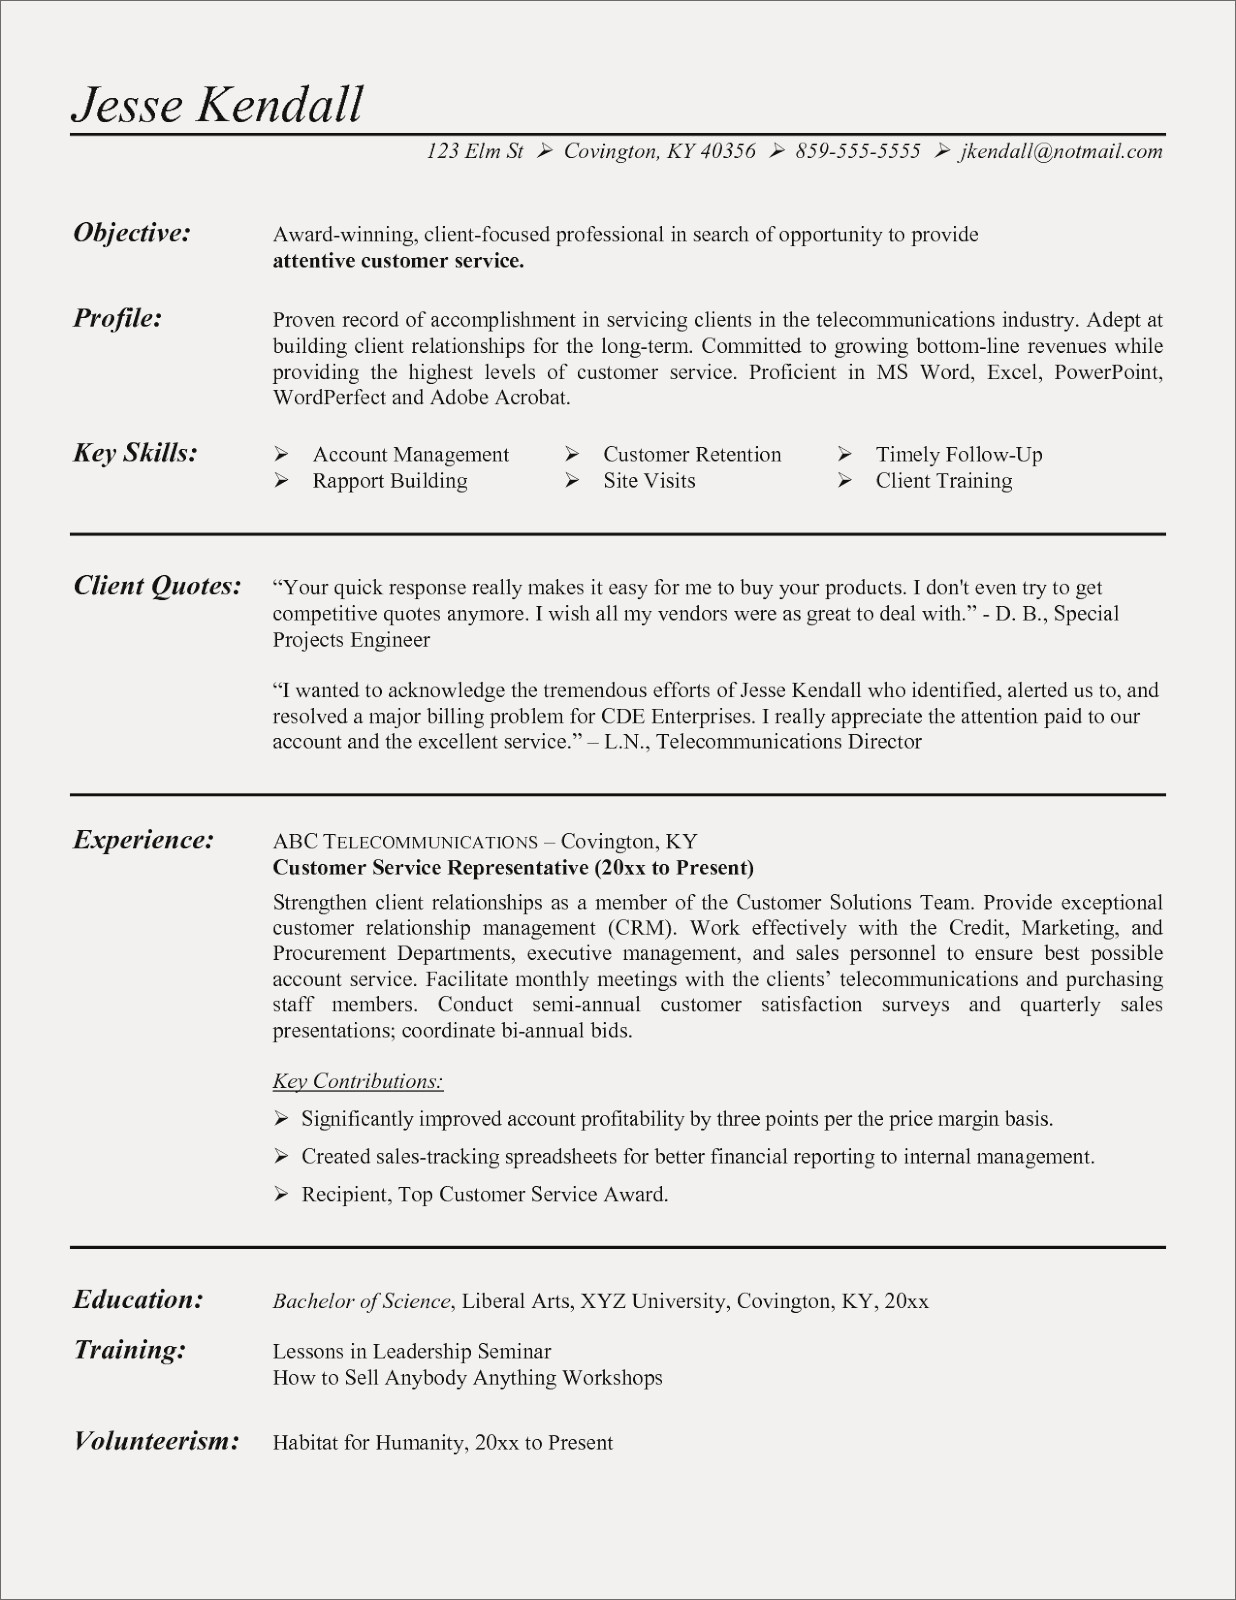 Scientific Resume Template - Resume Templates for Customer Service Fresh Beautiful Grapher Resume